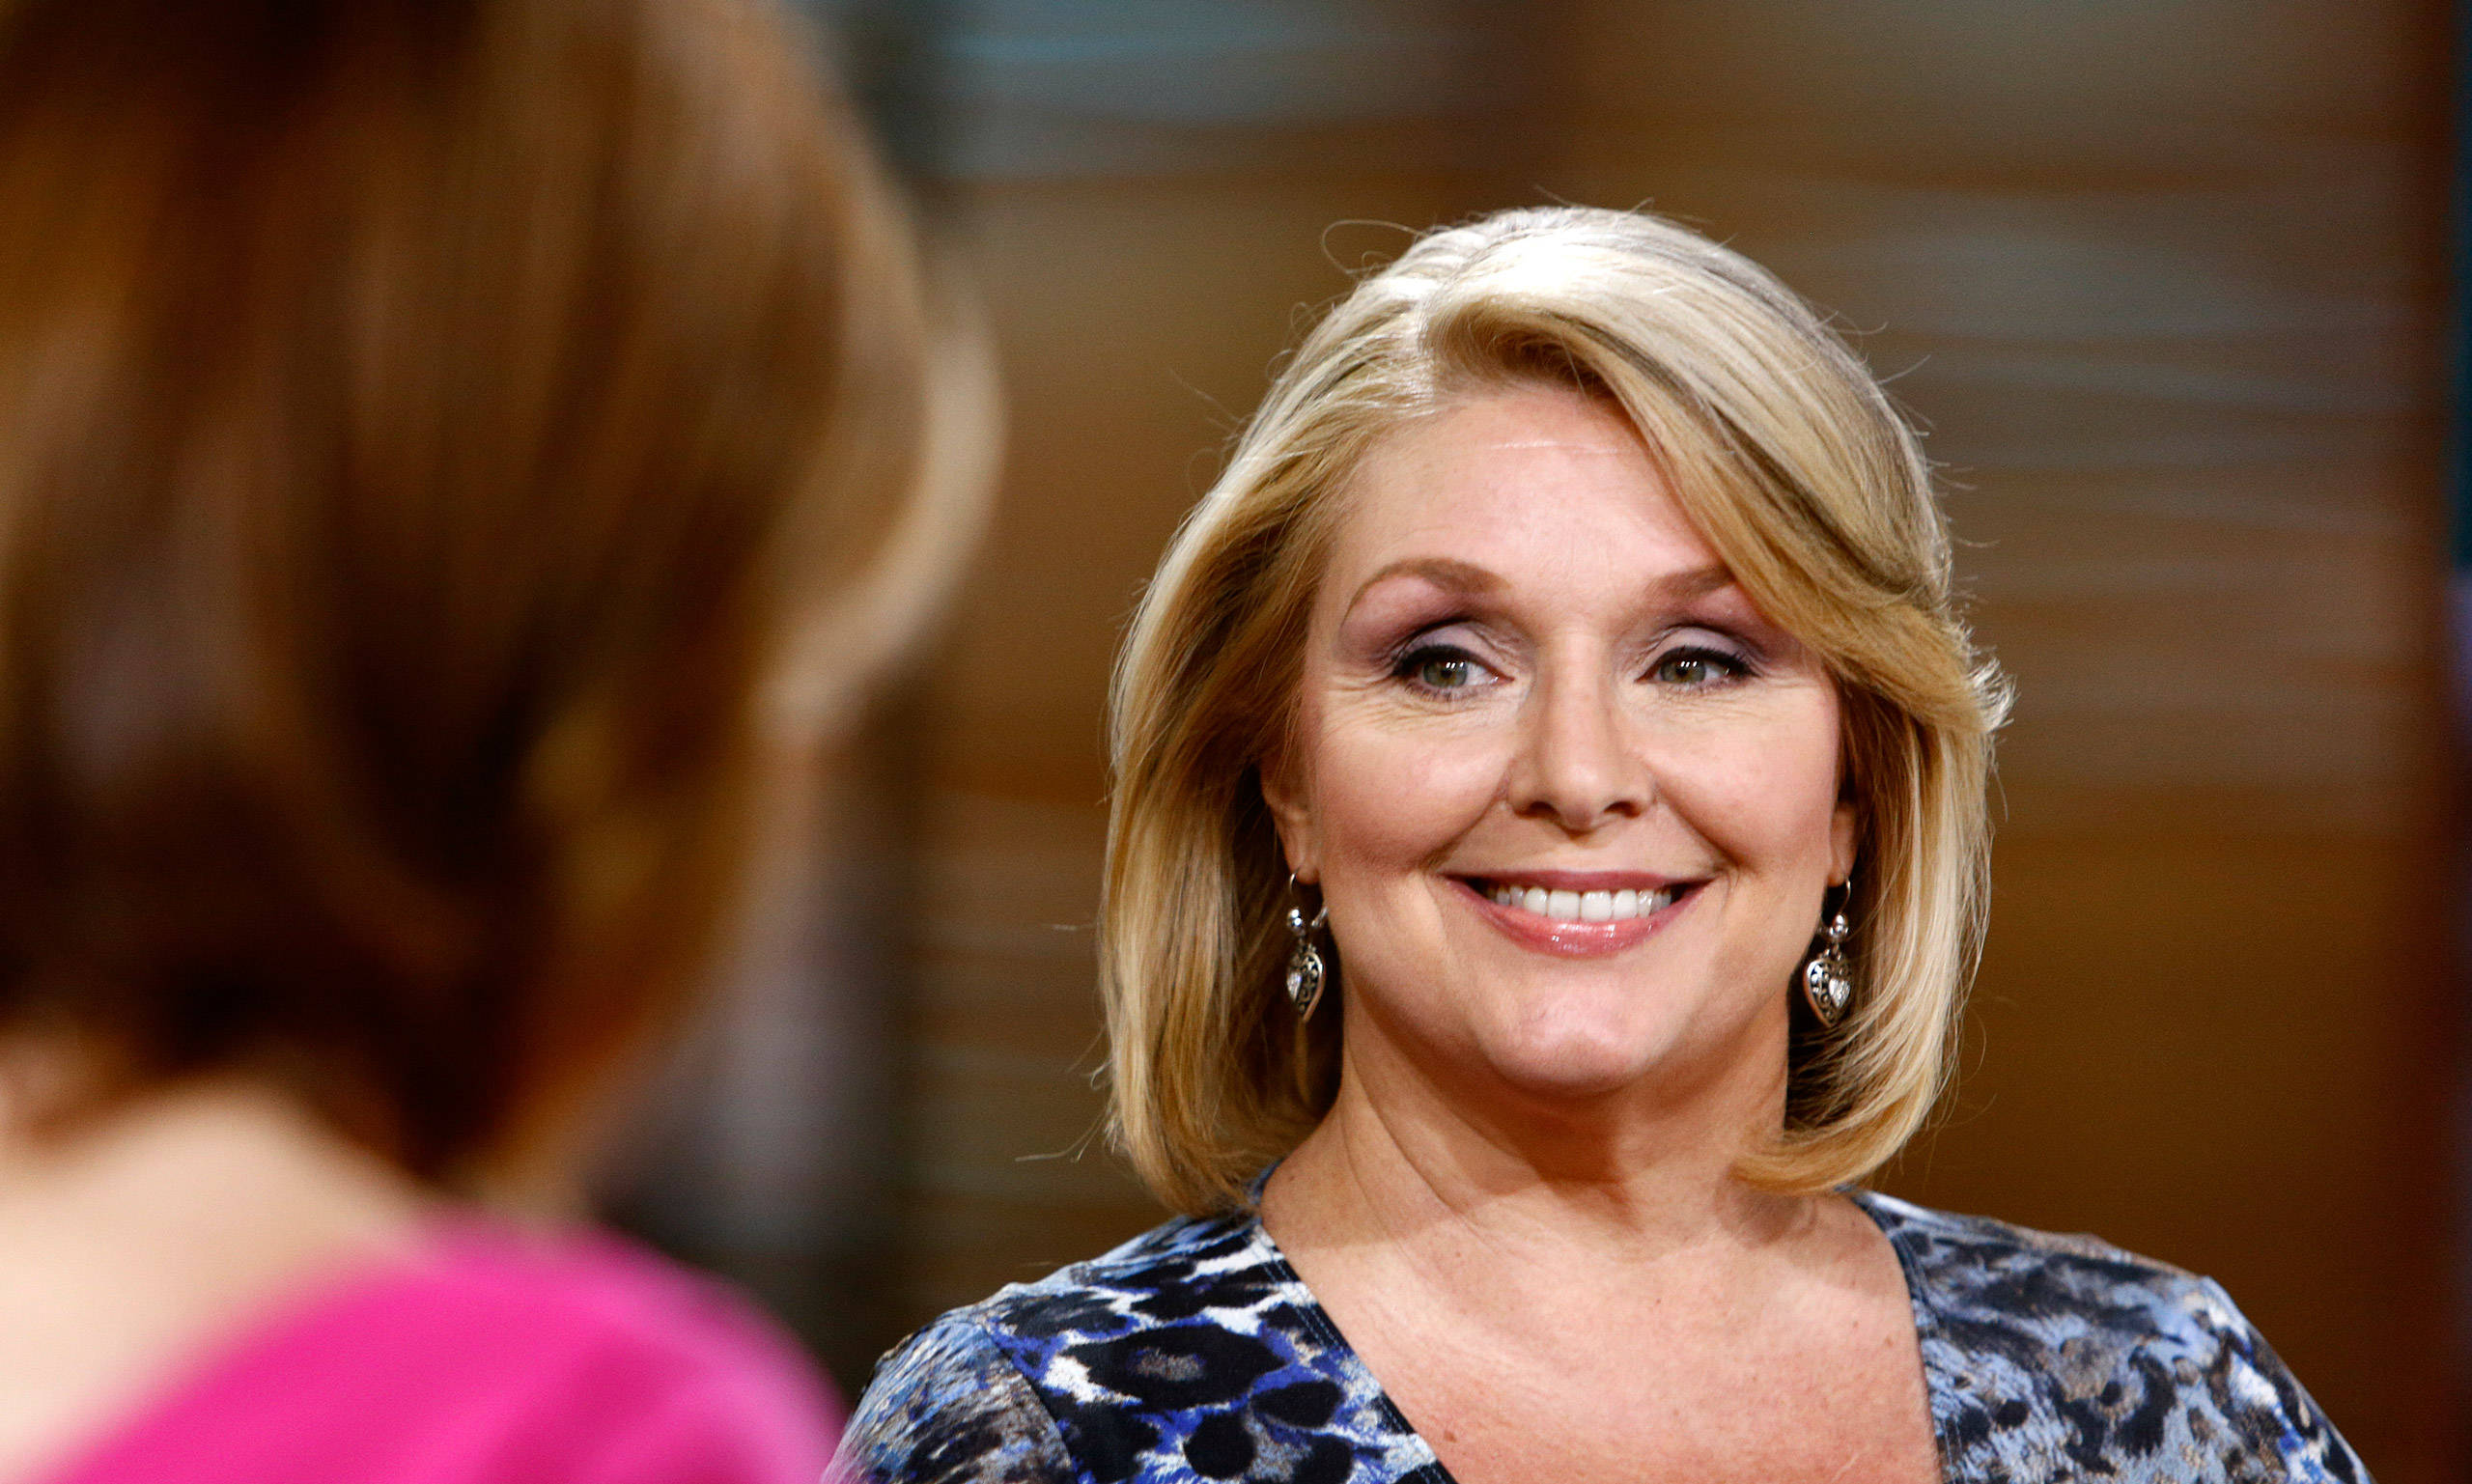 Samantha Geimer appears on NBC News'  Today  show on Sept. 16, 2013.